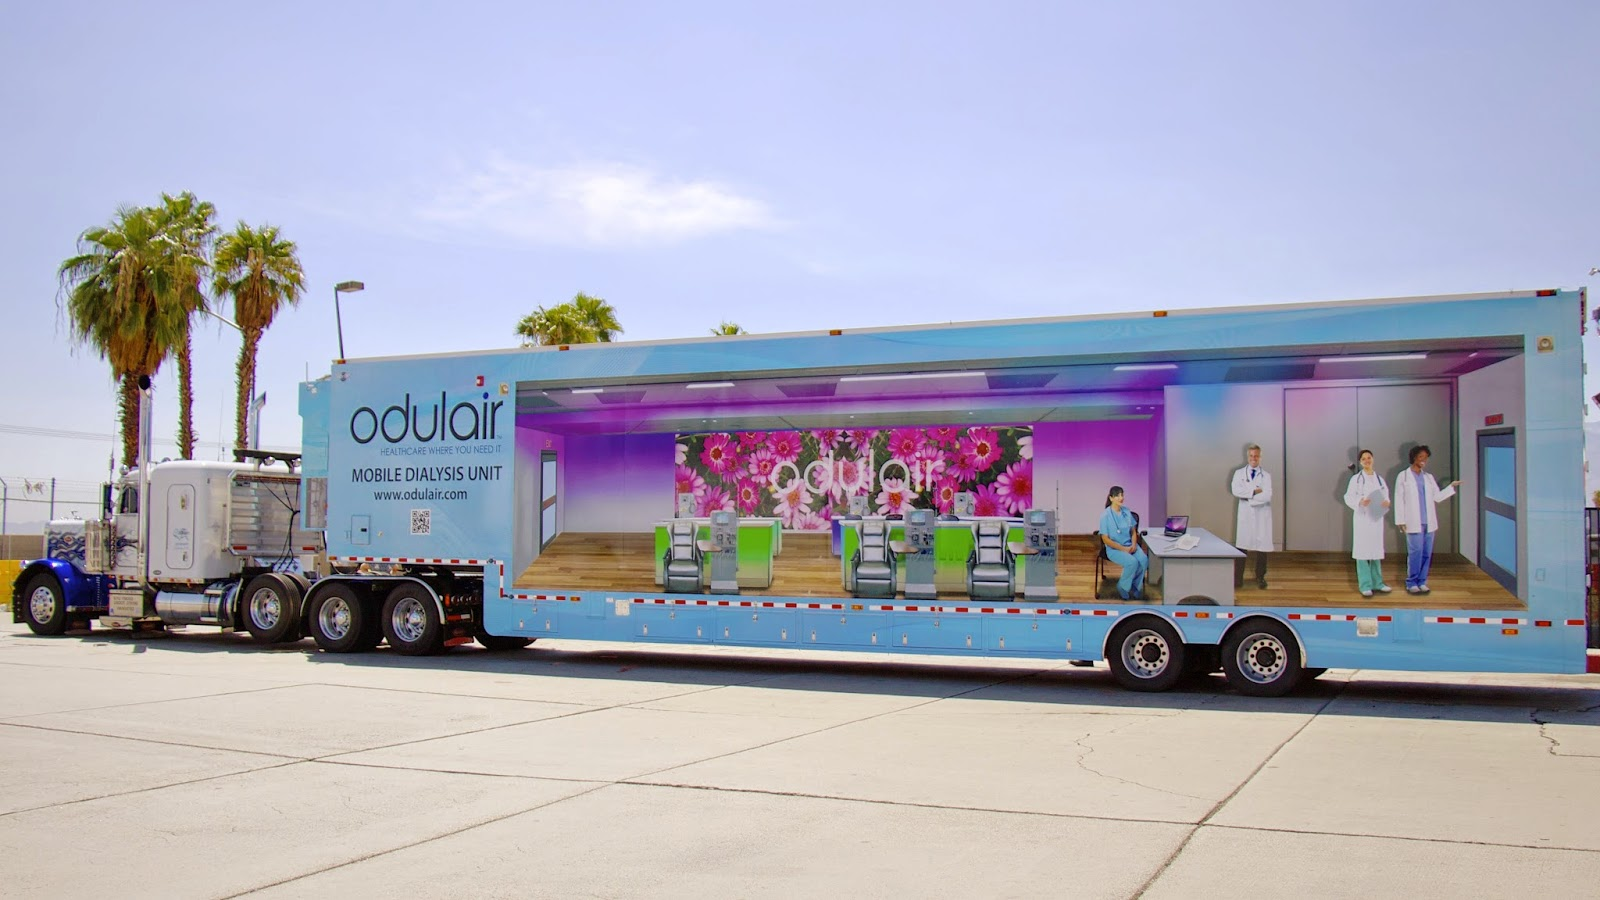 Mobile Dialysis Units in the United States